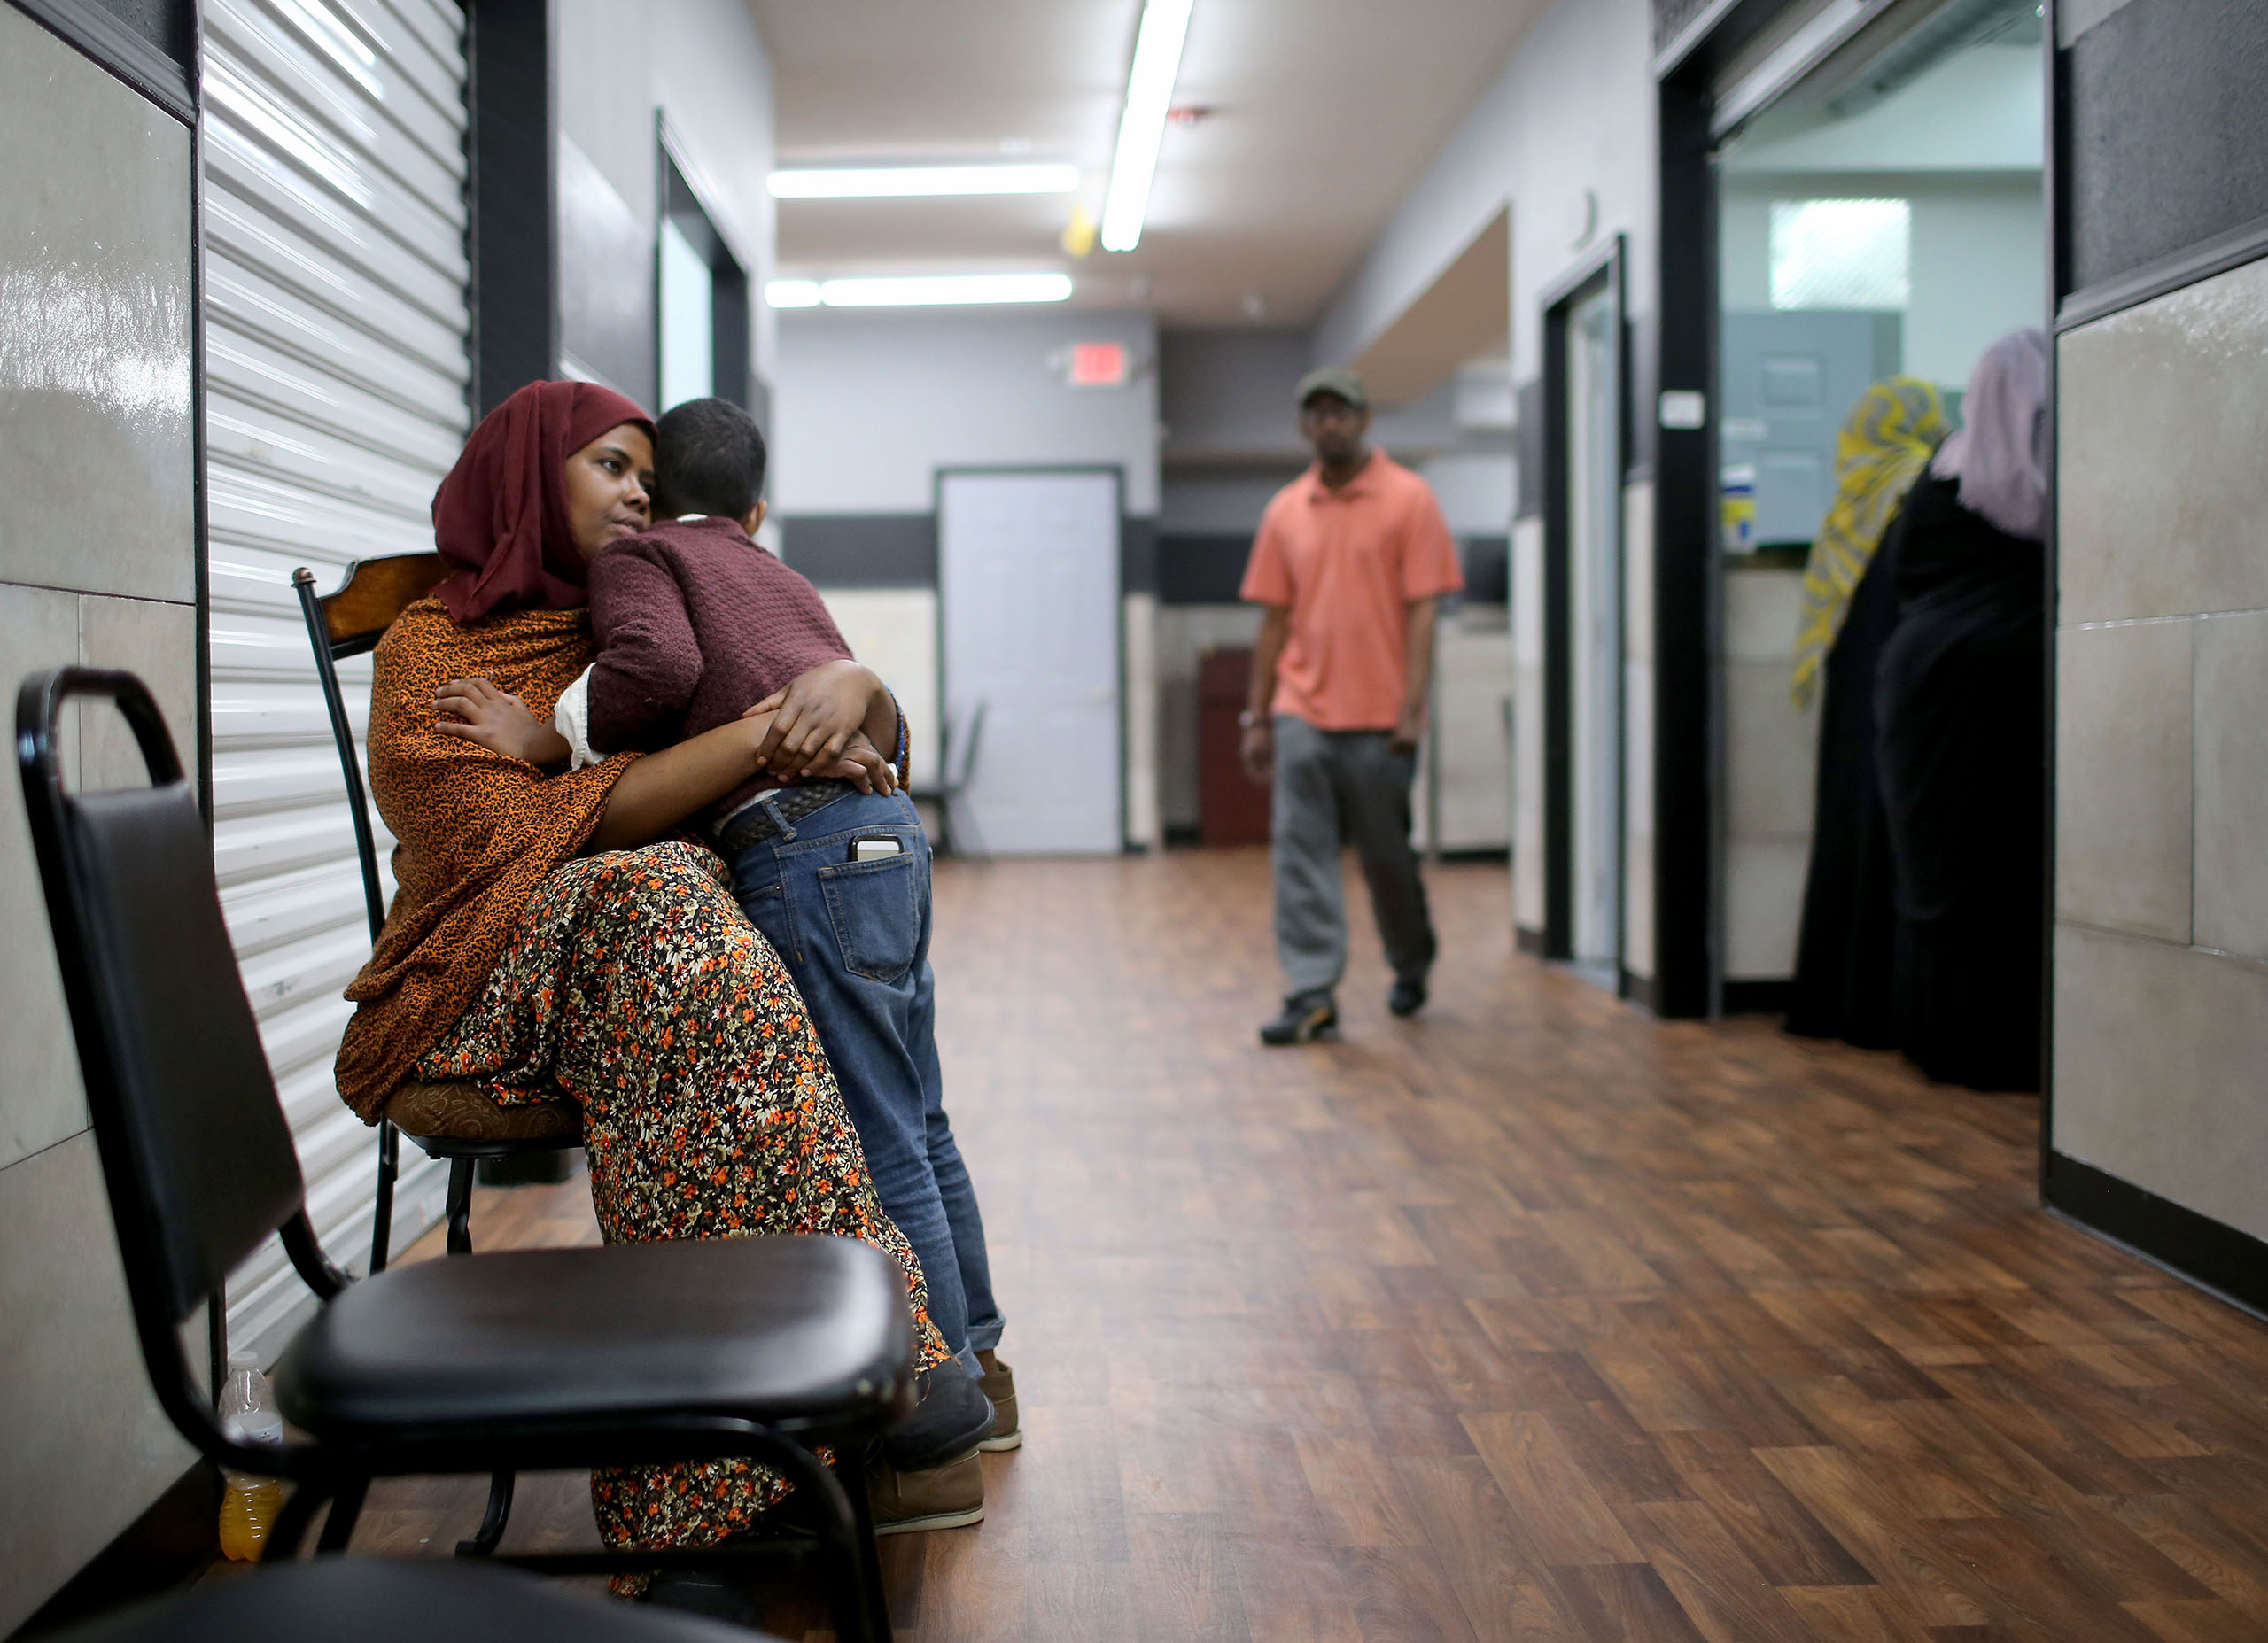 Ayan Farah, the mother of defendent Mohamed Farah, 22, hugs her youngest son outside the family's restaurant in the Karmel Mall in Minneapolis, Minn., June 3, 2016.